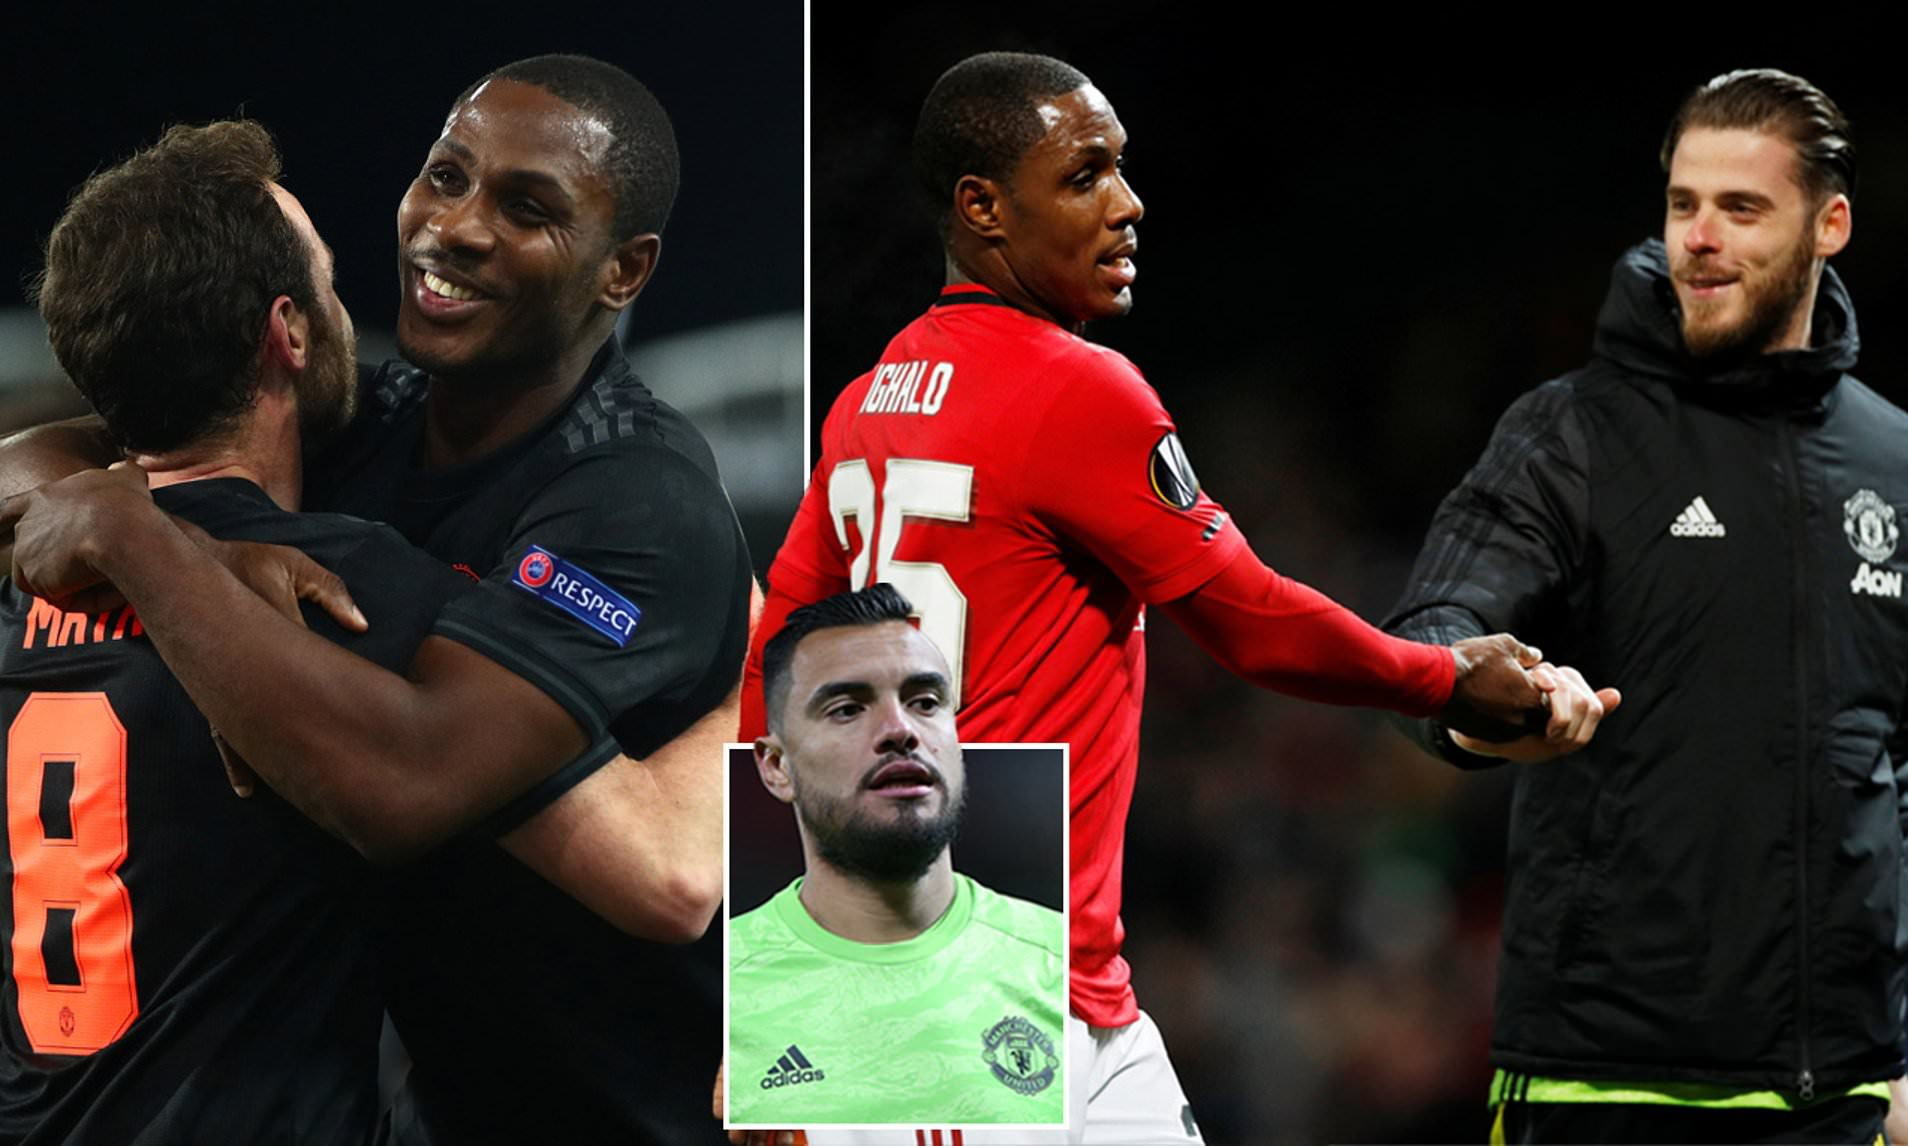 Odion Ighalo praises teammates David de Gea, Sergio Romero and Juan Mata for helping him settle in at Manchester United